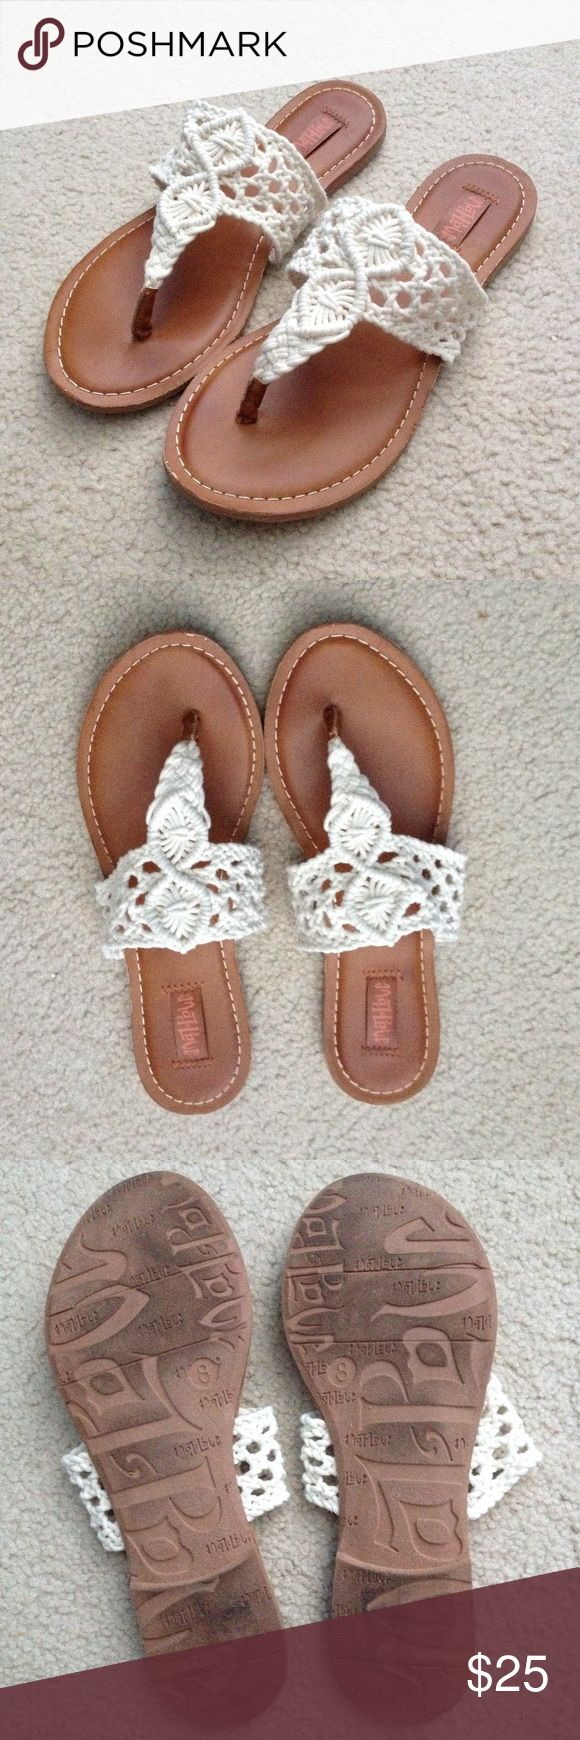 Macrame Sandals Super cute macrame sandal flip flops. Women's size 8. Purchased from Pacsun. Has a boho beach vibe. Cute for festivals. Chestnut brown with off-white colored macrame design. Footbed and macrame are in very good shape and show little if any wear. Small nicks / sings along edges (pic 4) and some discoloration to bottoms from normal wear (pic 3). Only worn 3 or 4 times. Good used condition (: PacSun Shoes Sandals